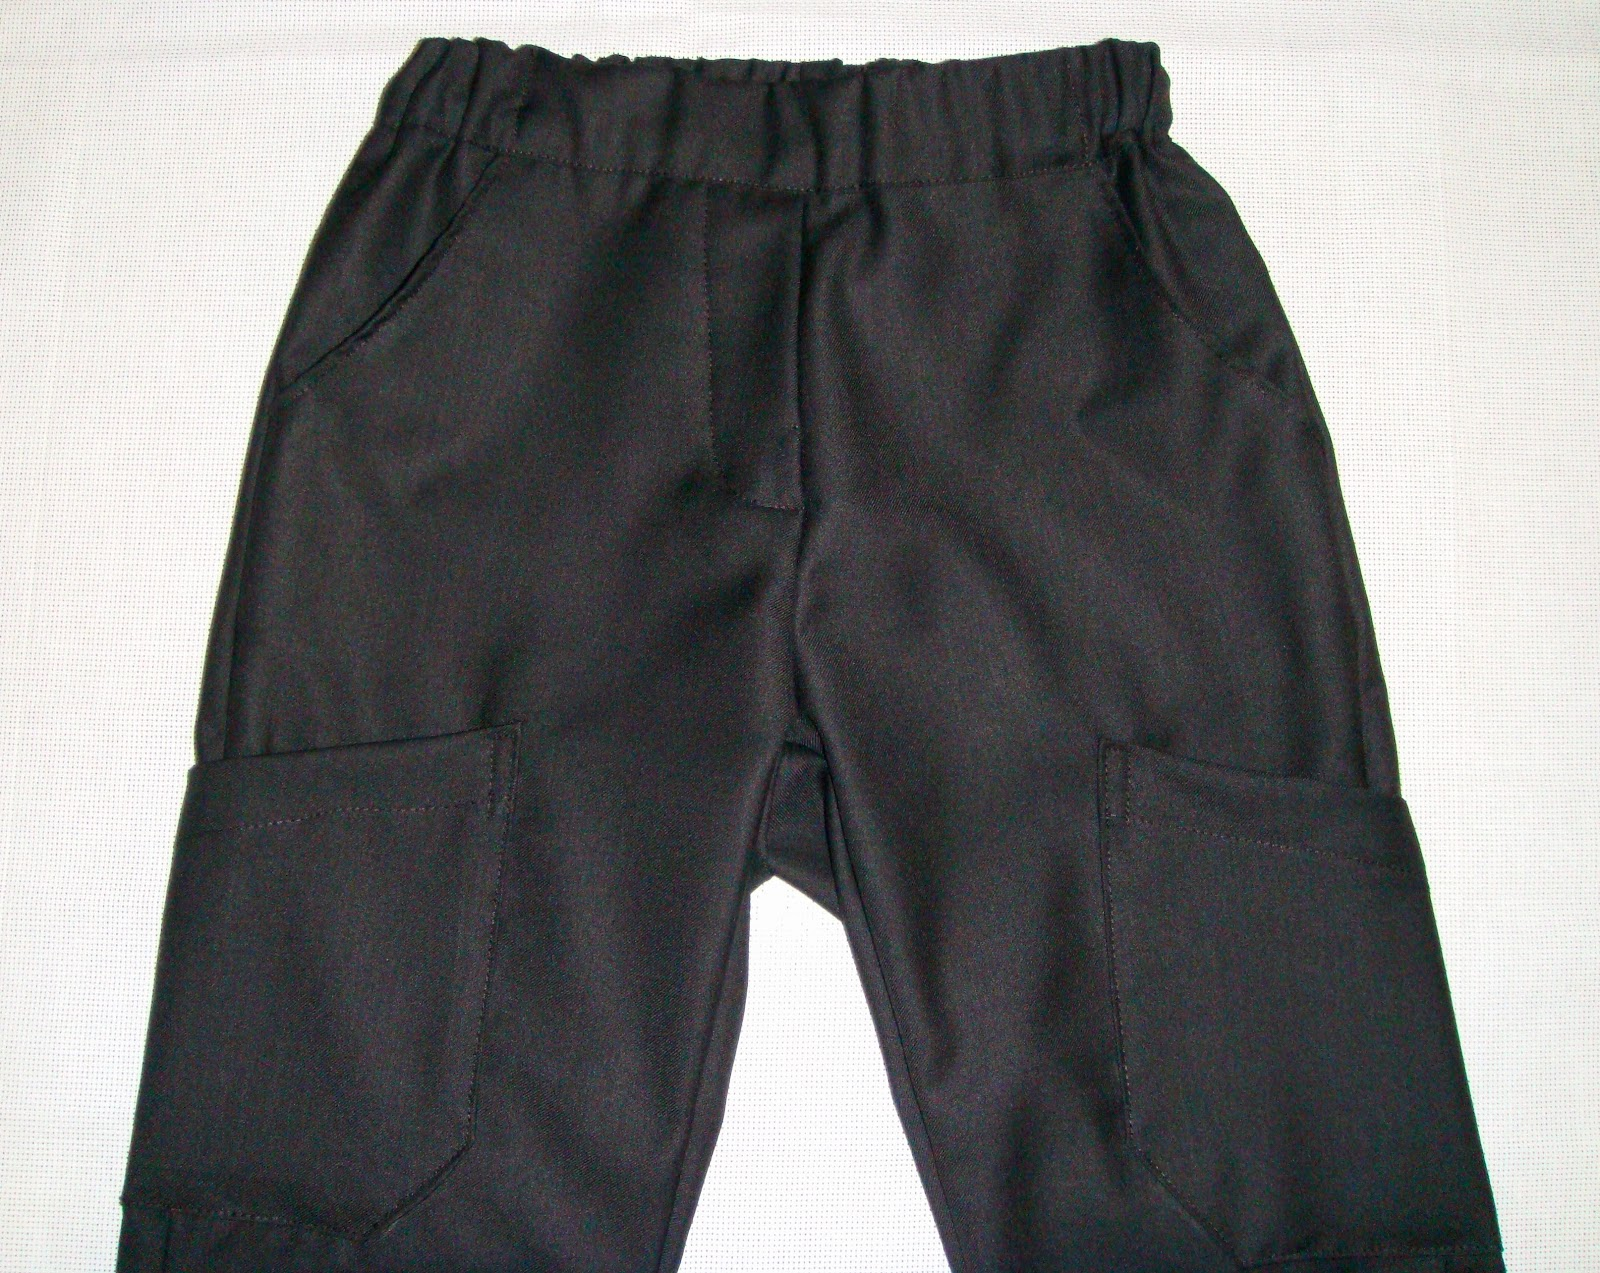 http://velvetribbonsew.blogspot.com/2012/10/black-pants-for-eduardo.html